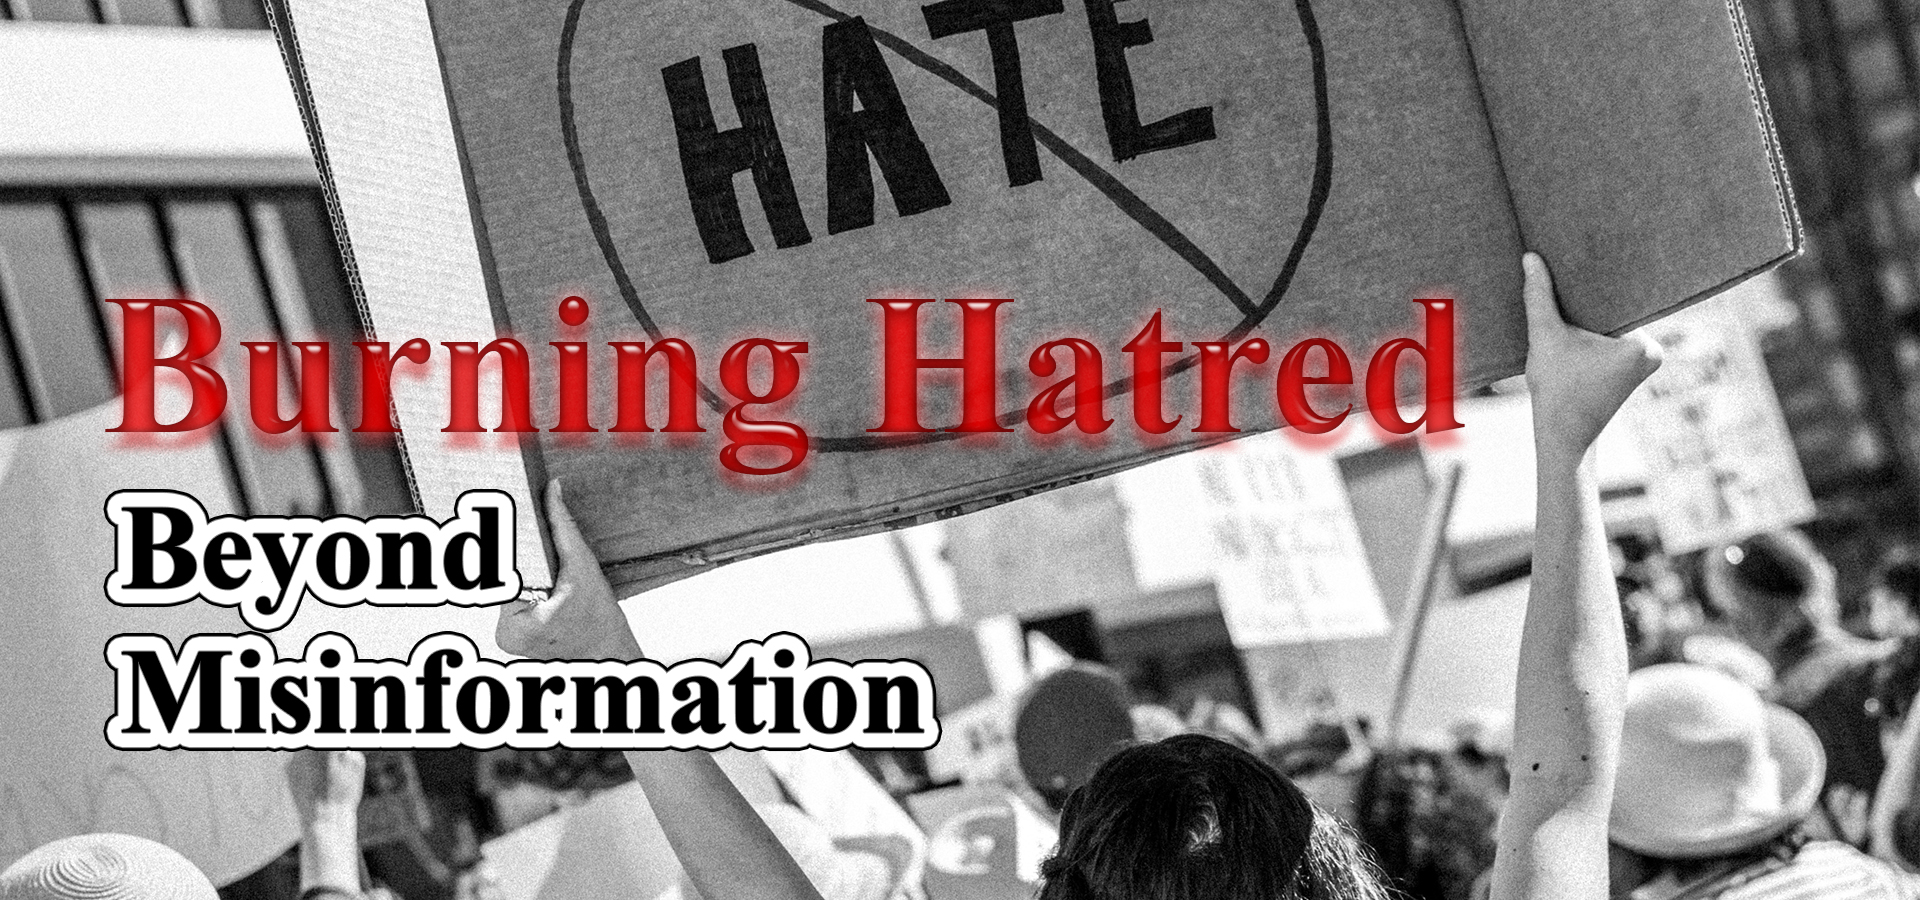 Beyond Misinformation: Part 1 - Burning Hatred